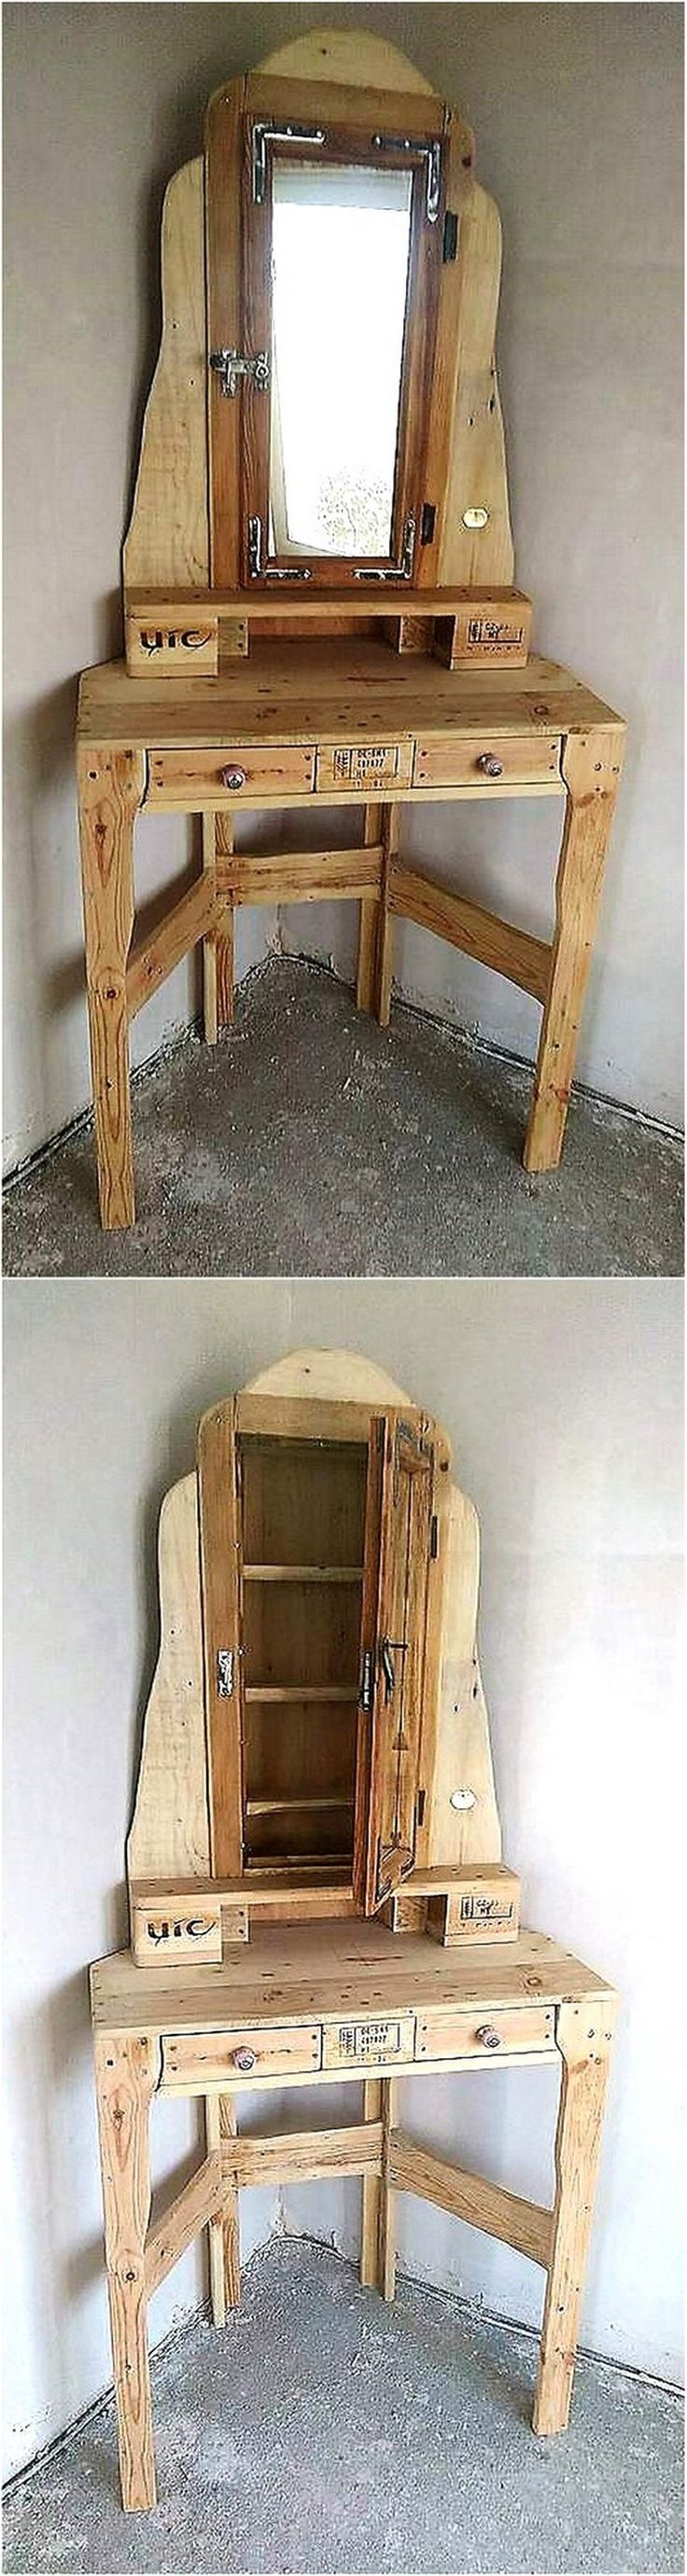 Now come to the creative creation for the bedroom other than the bed, the whole room can be filled with the items made up of wood pallets just like this vanity plan. This idea is great to save the space as it is for the placement in corner of the room.